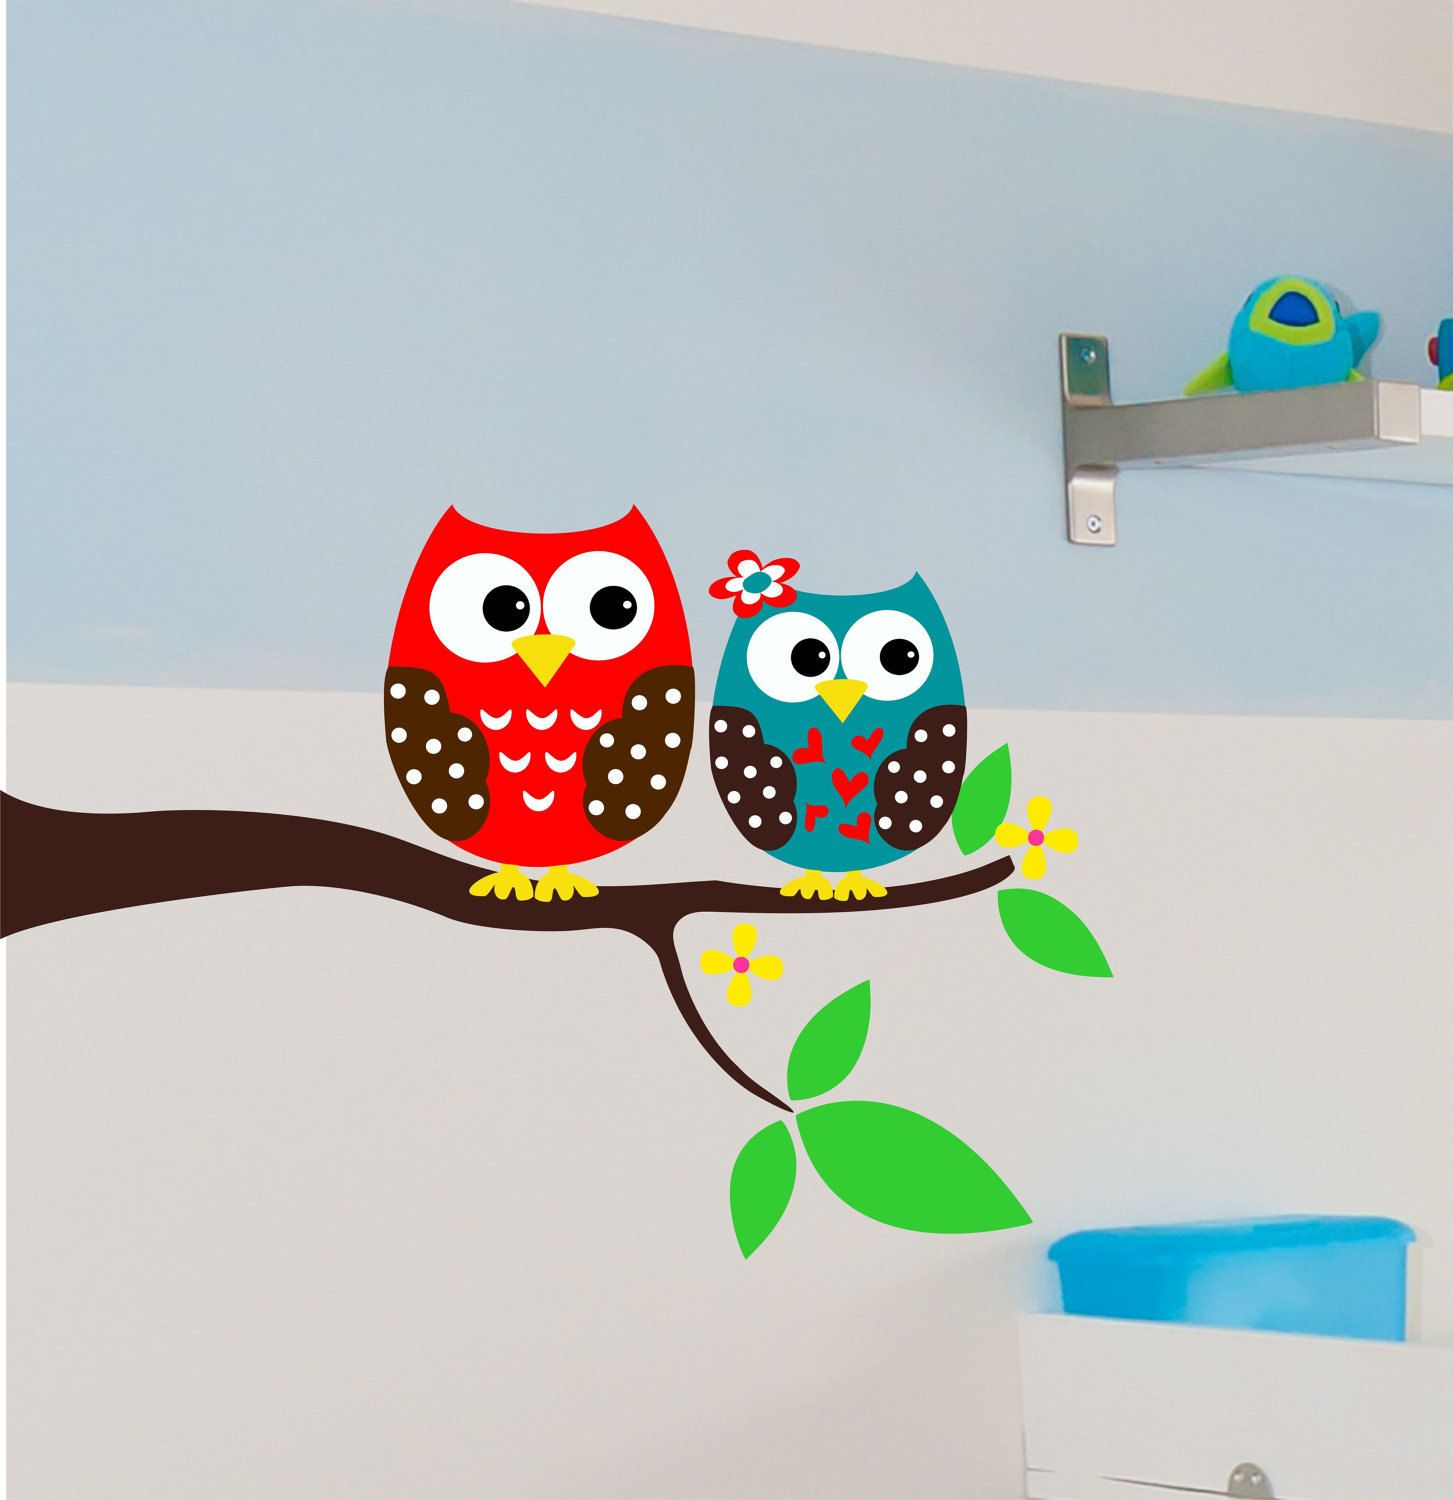 Owl wall art roselawnlutheran owl wall decal children wall decals owl wall art nursery art playroom amipublicfo Image collections